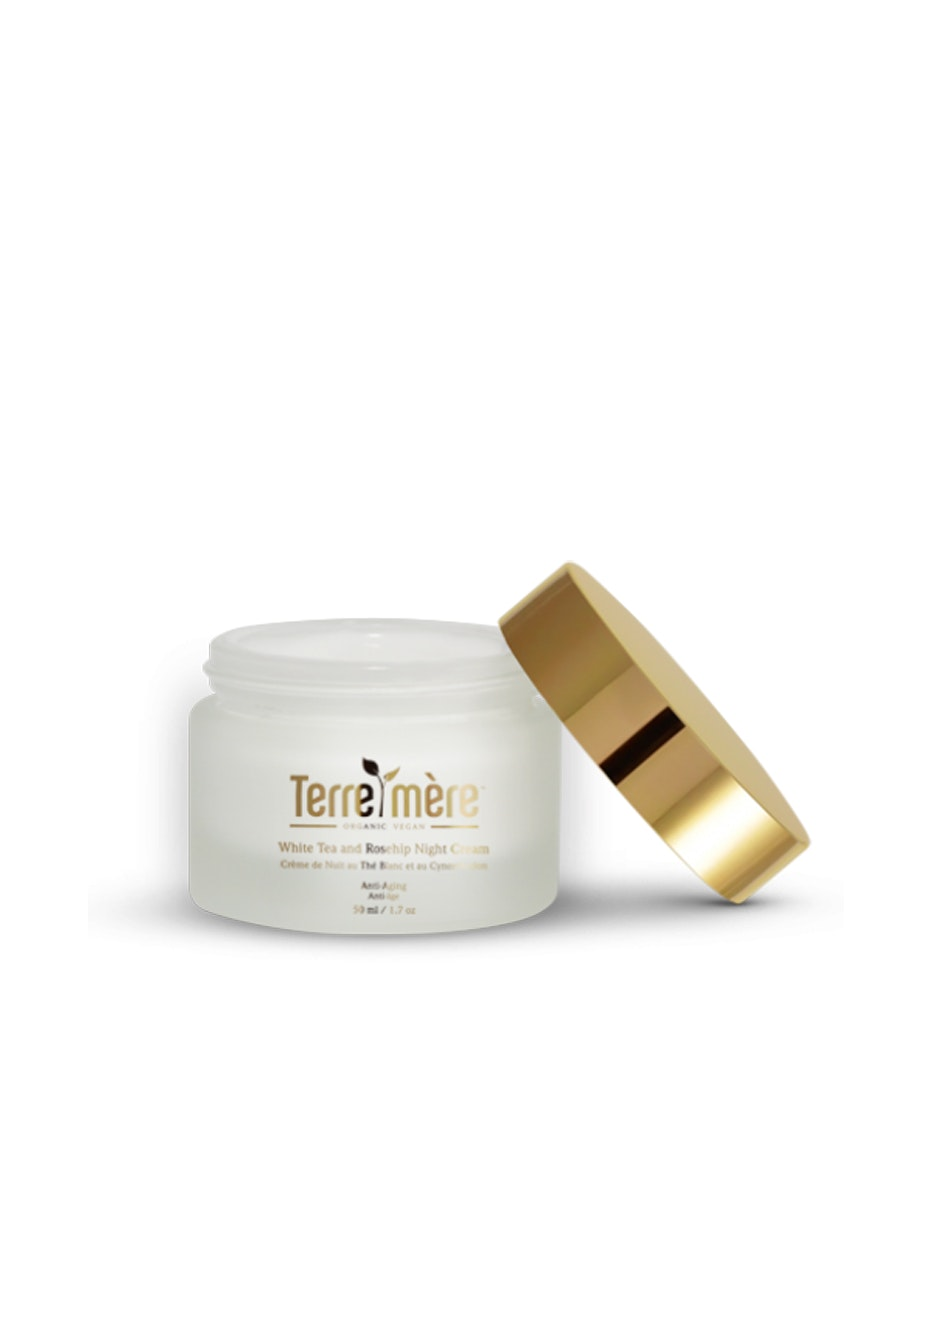 Terre Mere - White Tea and Rosehip Night Cream